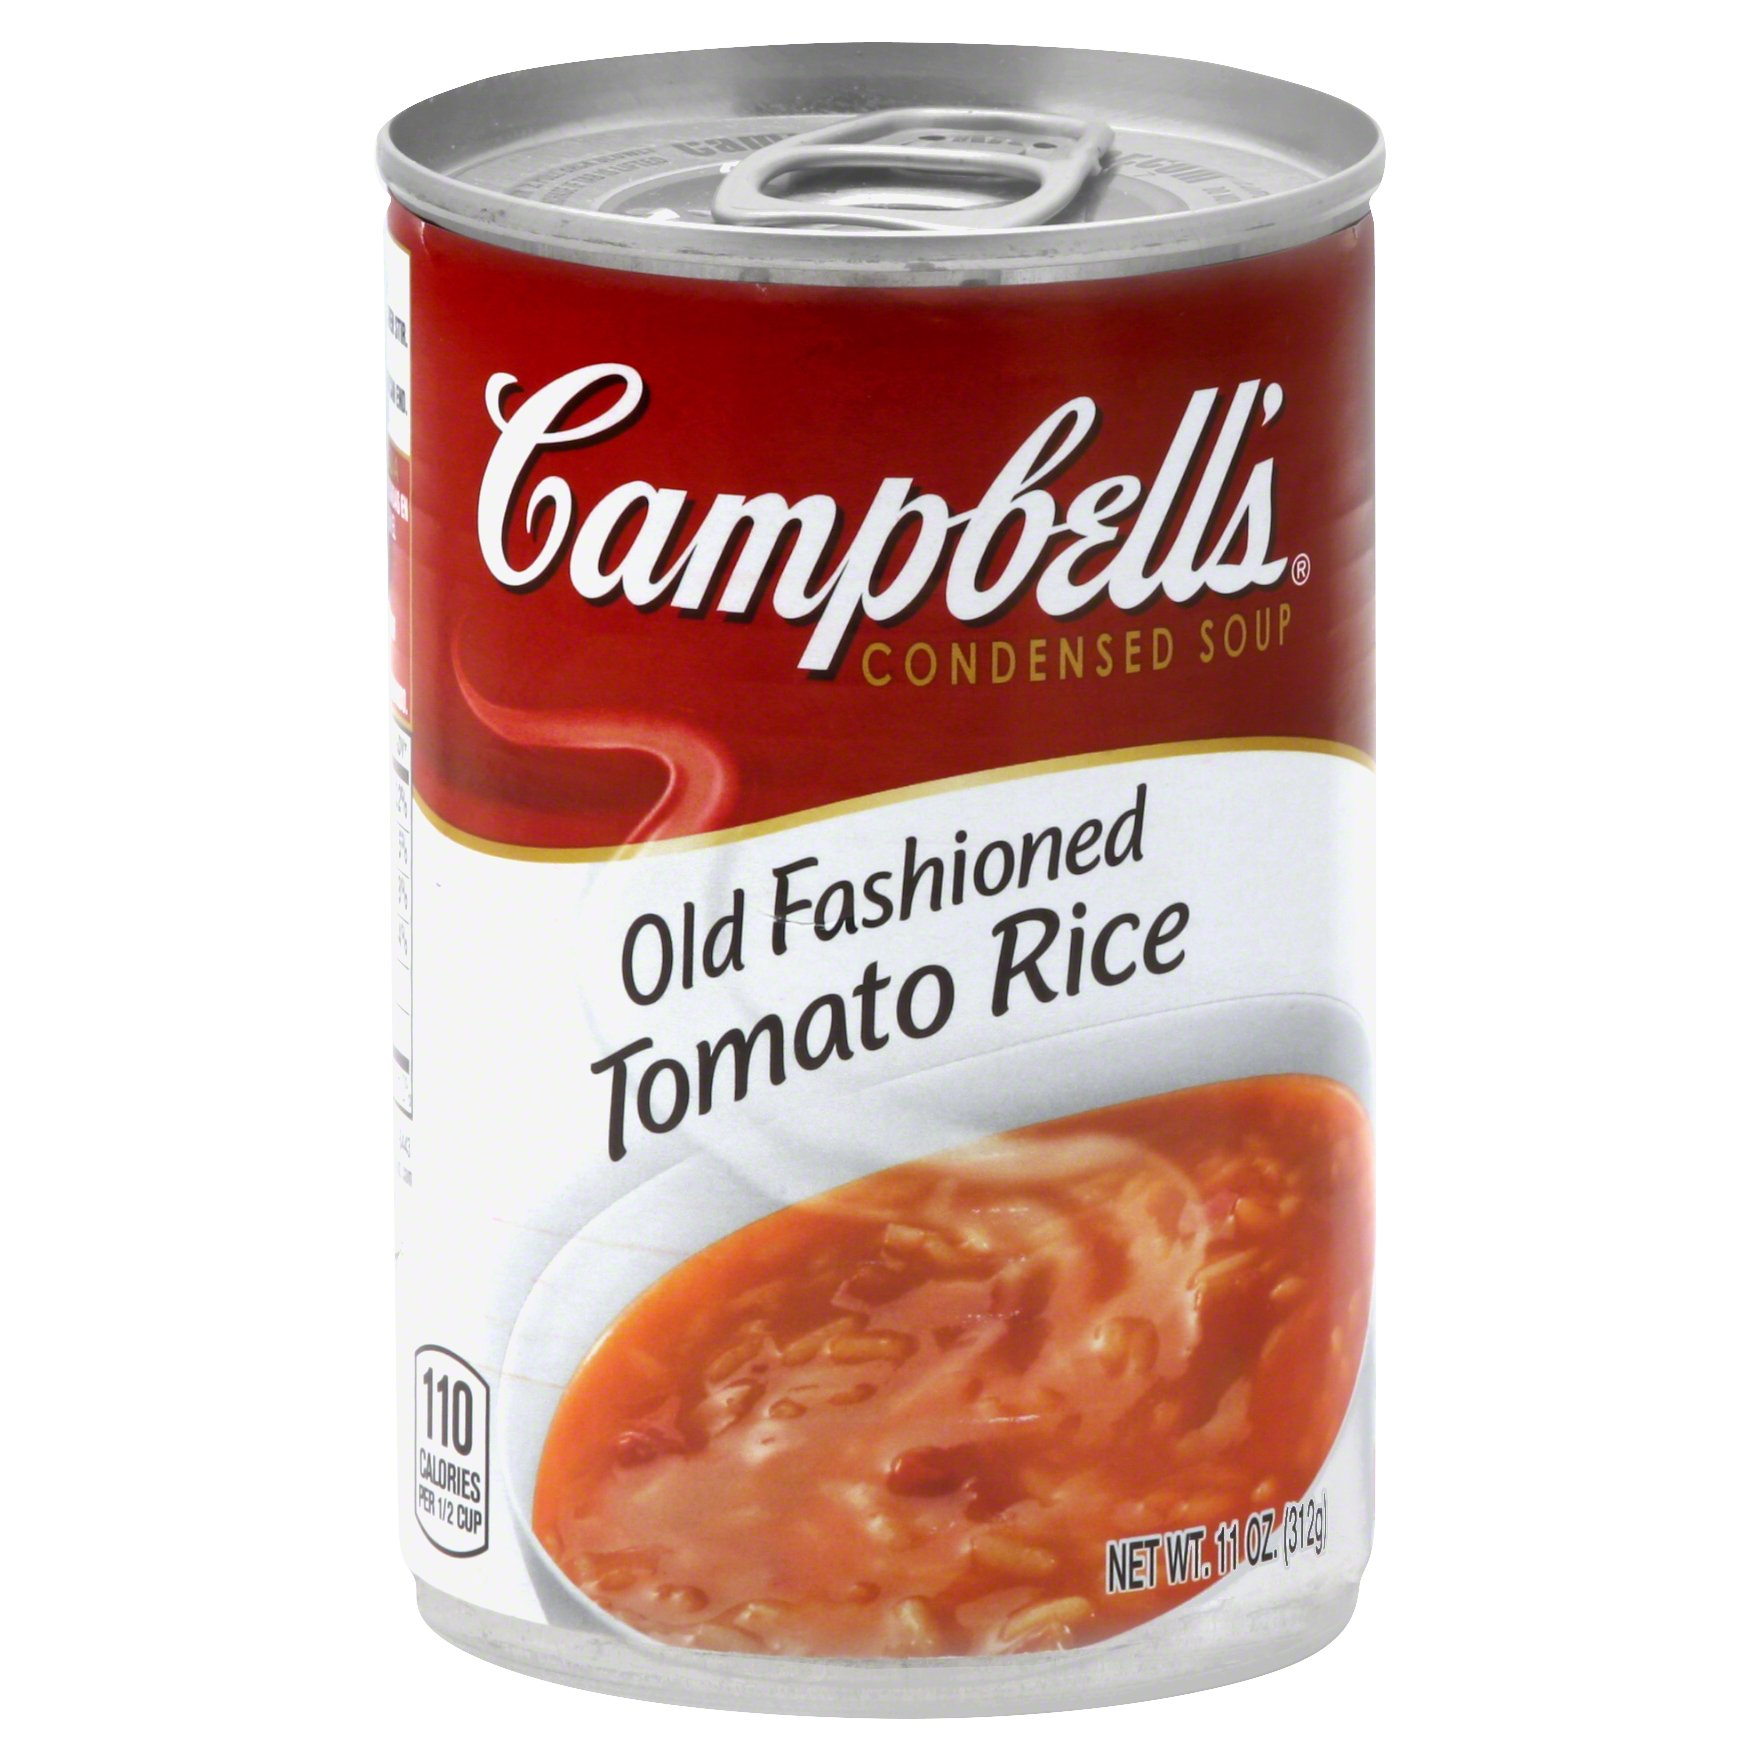 Campbells Old Fashioned Tomato Rice 11OZ 12-Pack